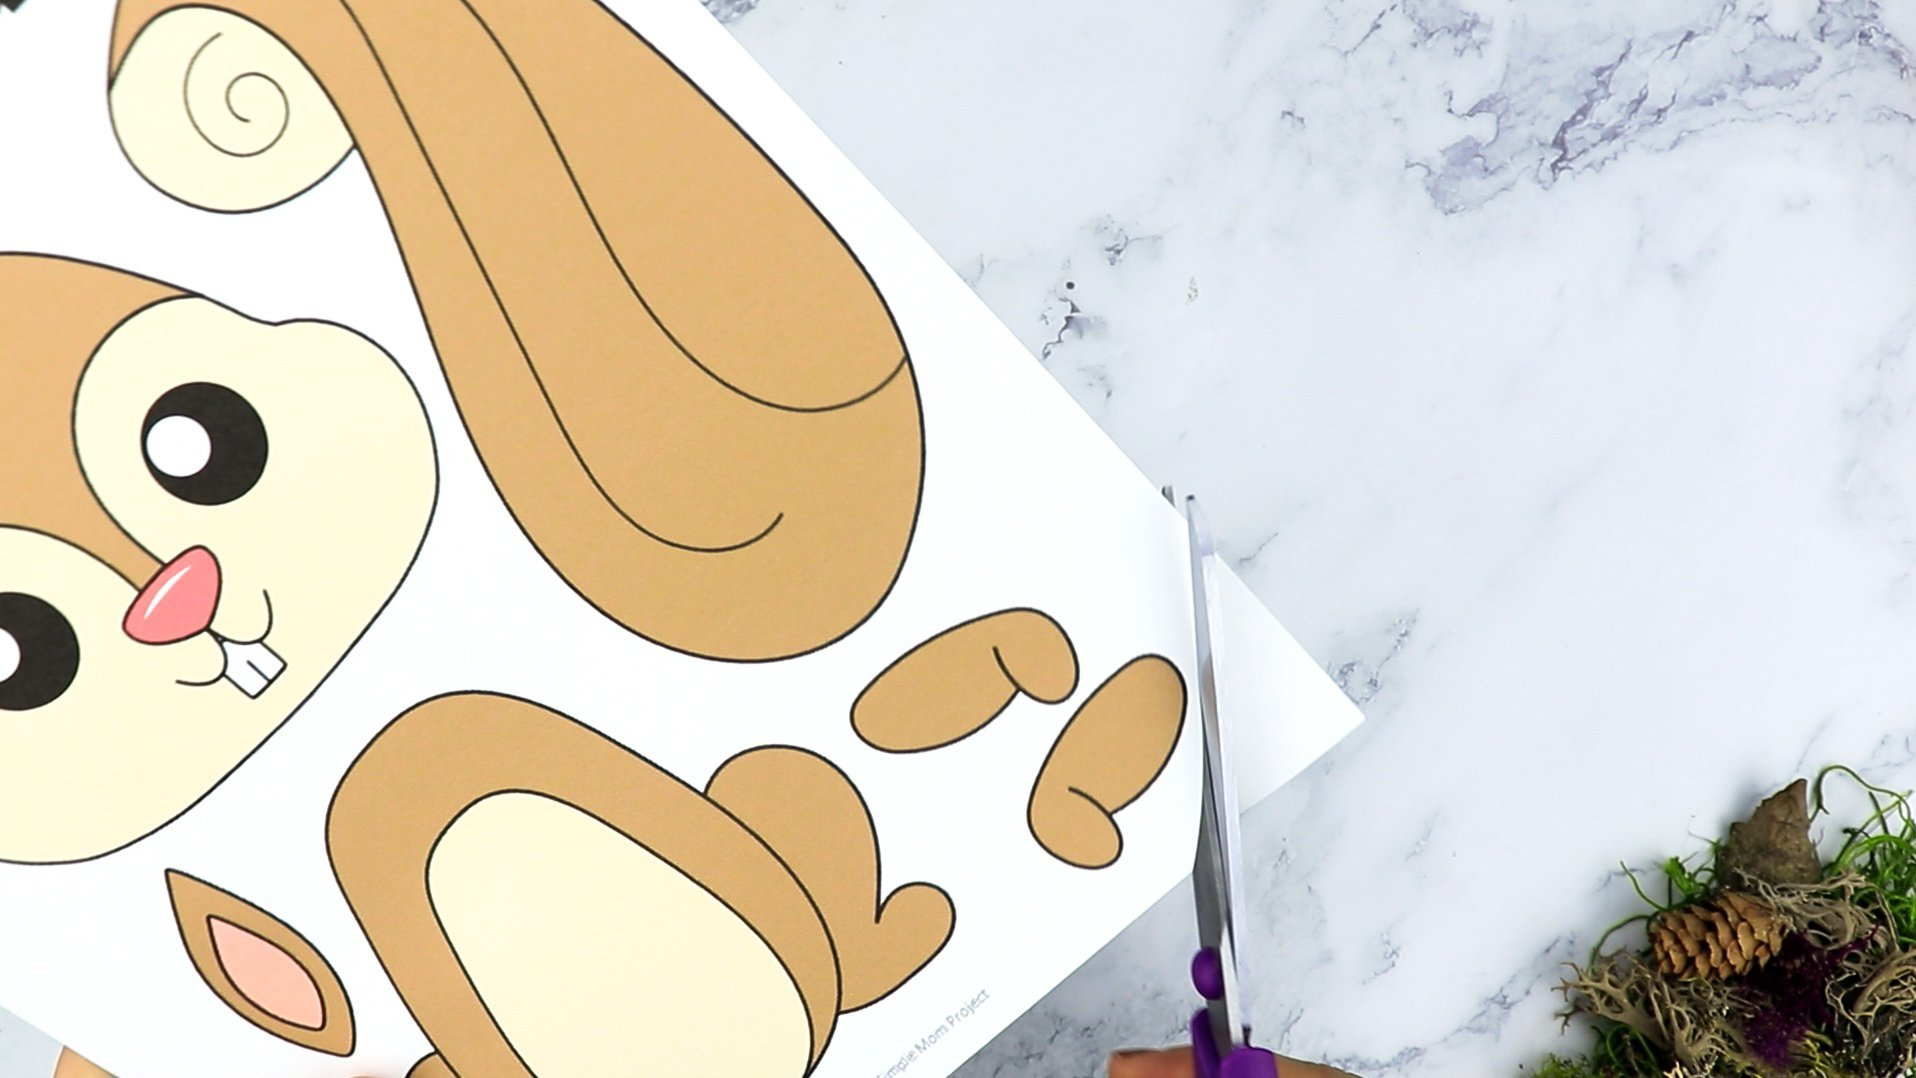 Free Printable Forest Squirrel Craft Template for kids, preschoolers, toddlers and kindergartners